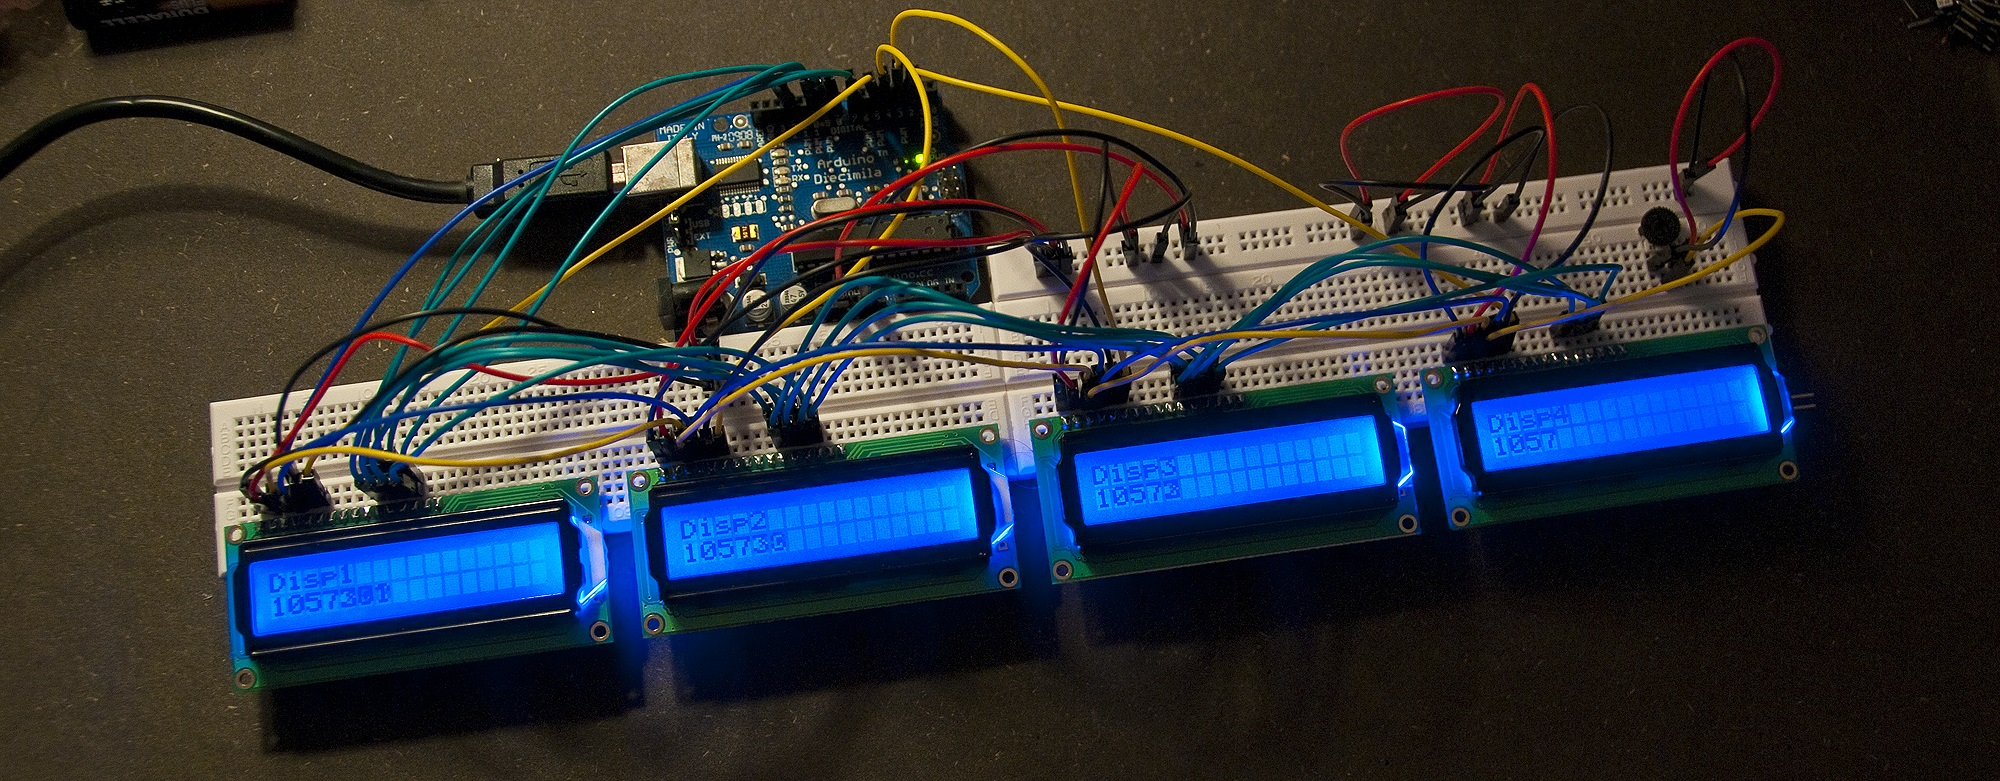 Running Multiple LCD Displays On One Arduino UNO